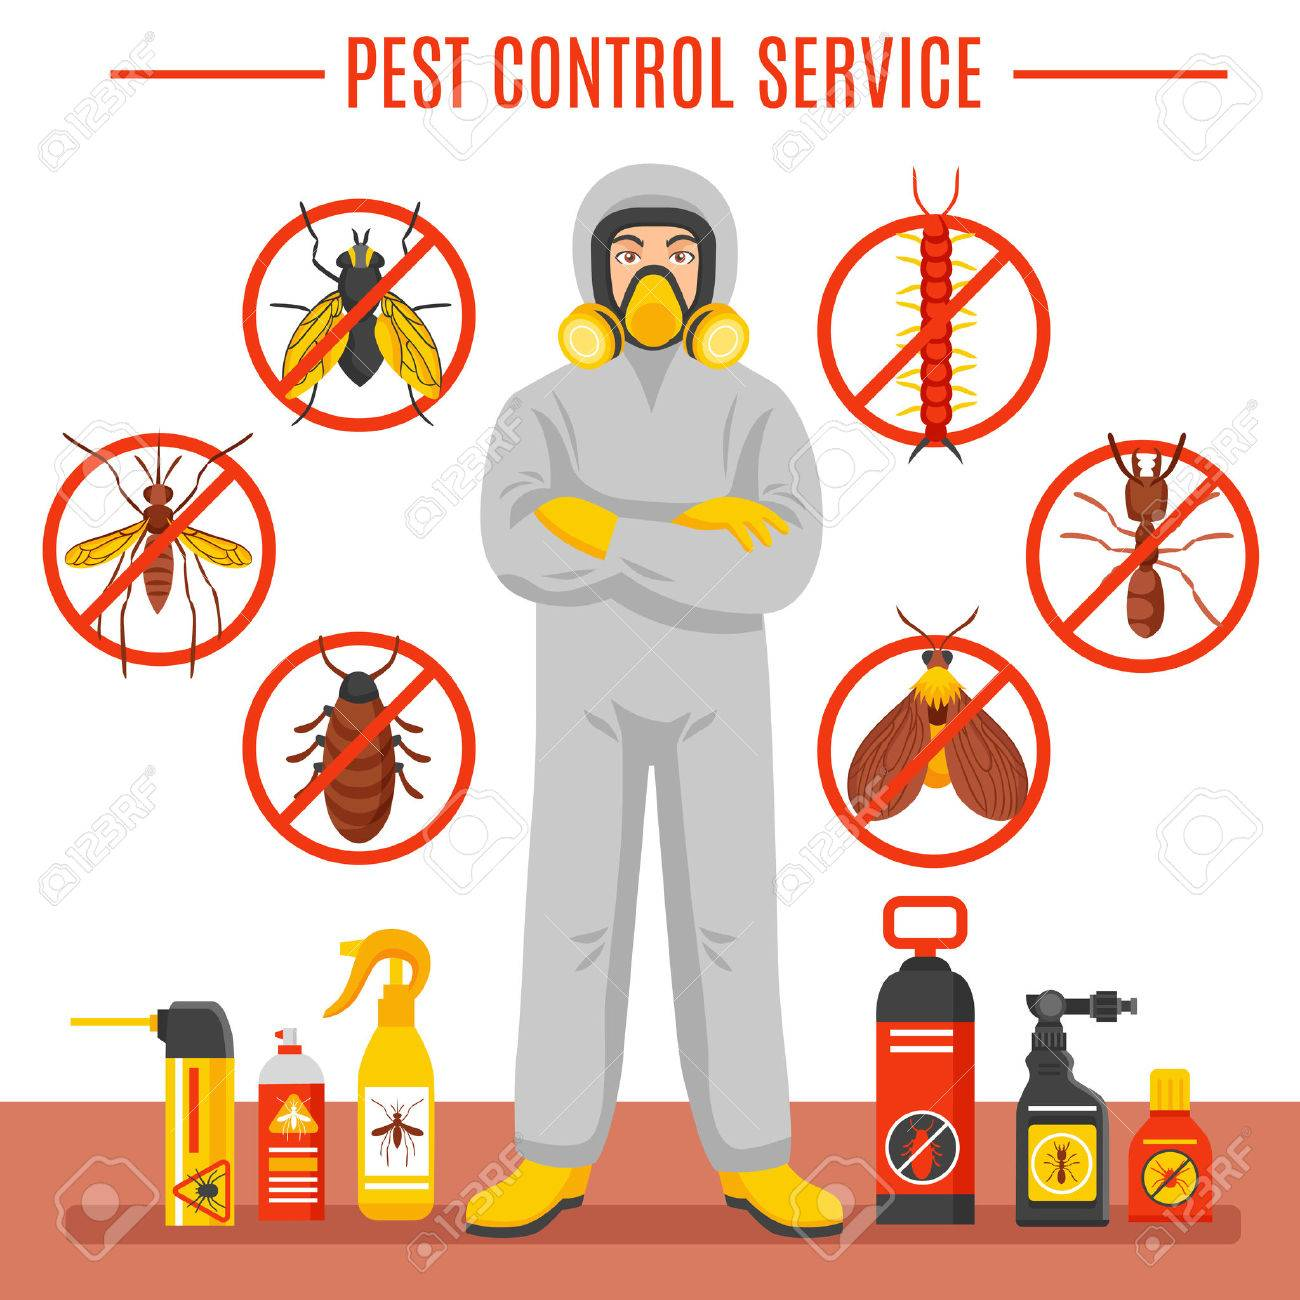 Pest control service vector illustration with exterminator of insects in chemical protective suit termites and disinfection cans flat icons Stock Vector - 61084473